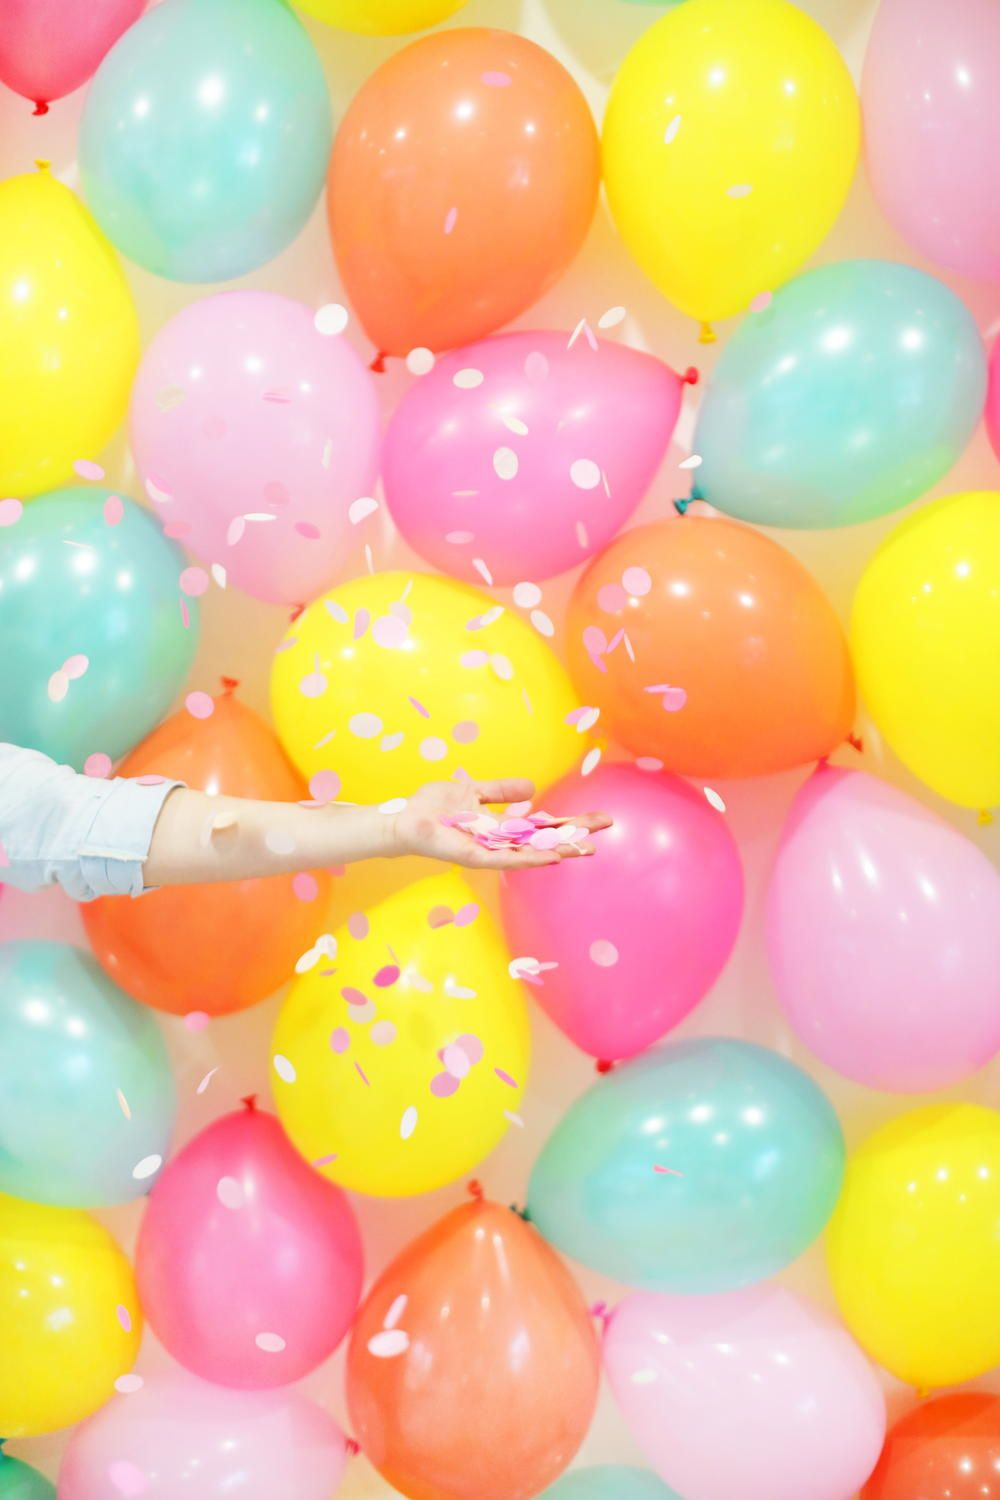 Amazing Balloon Grid For Balloon Wall Decoration Vignette - The Wall ...